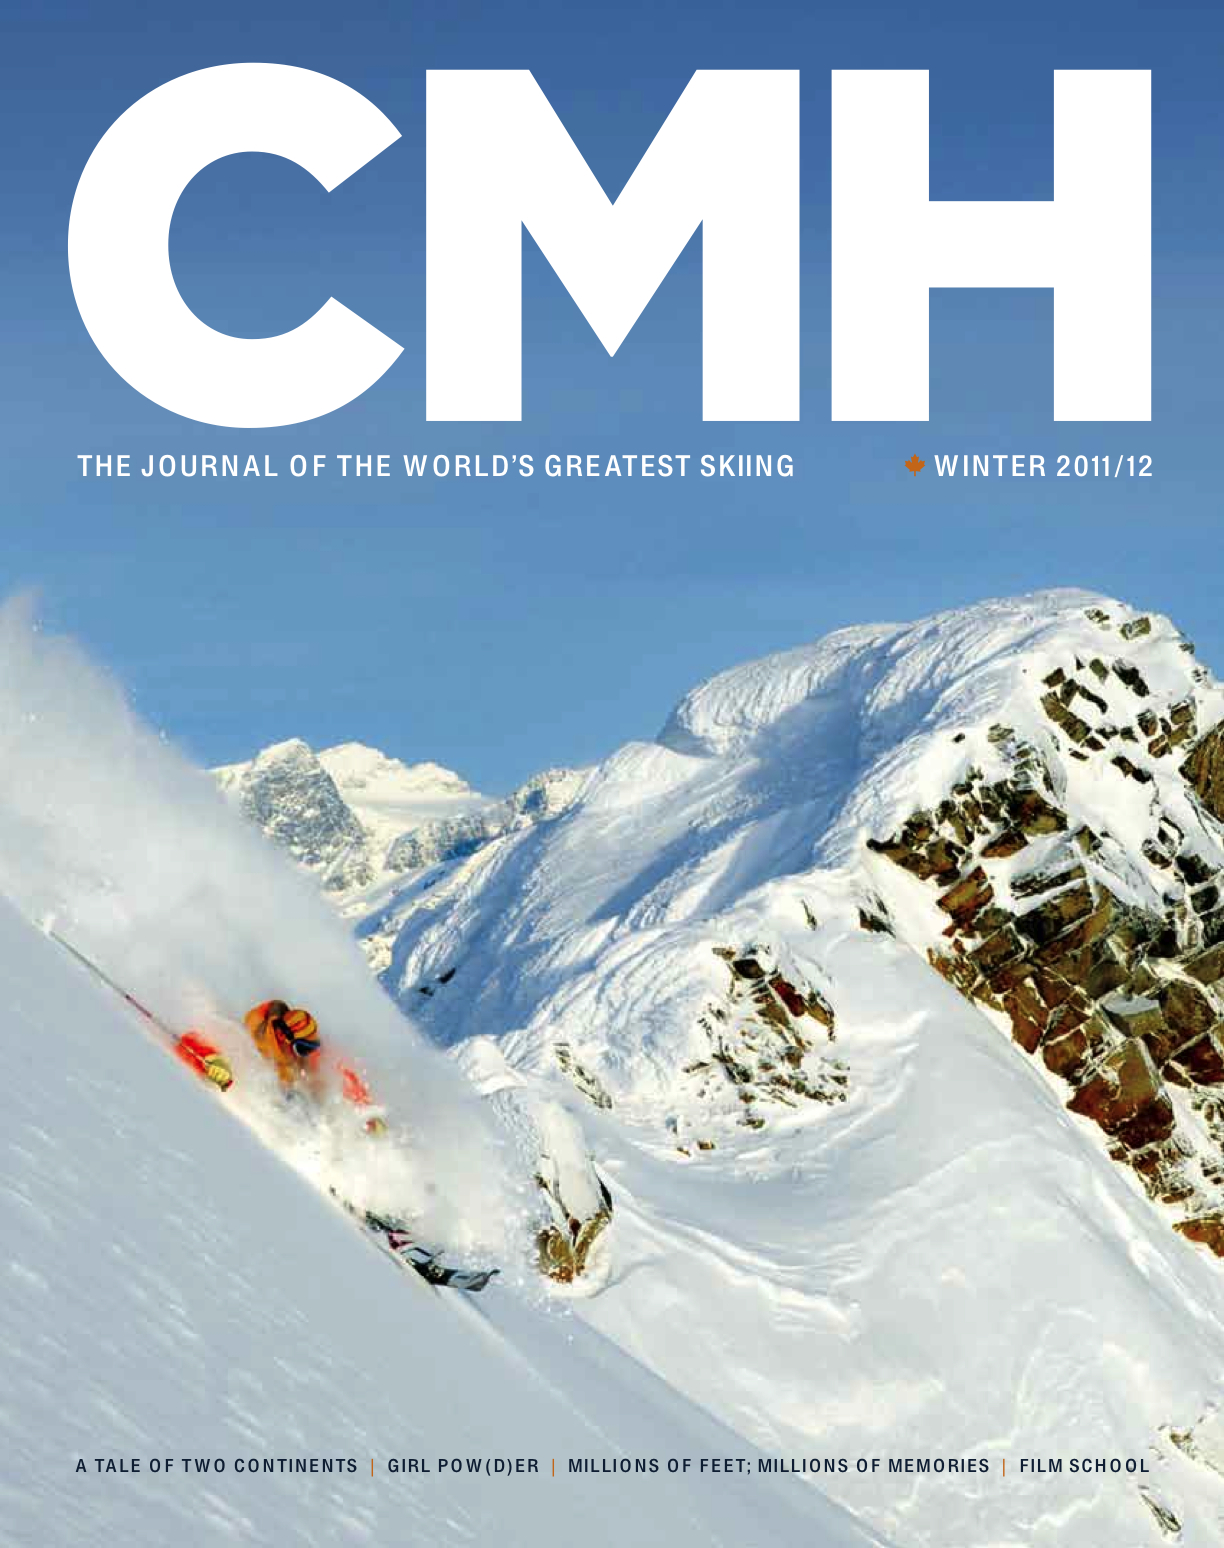 The CMH brochure is now out in digital form